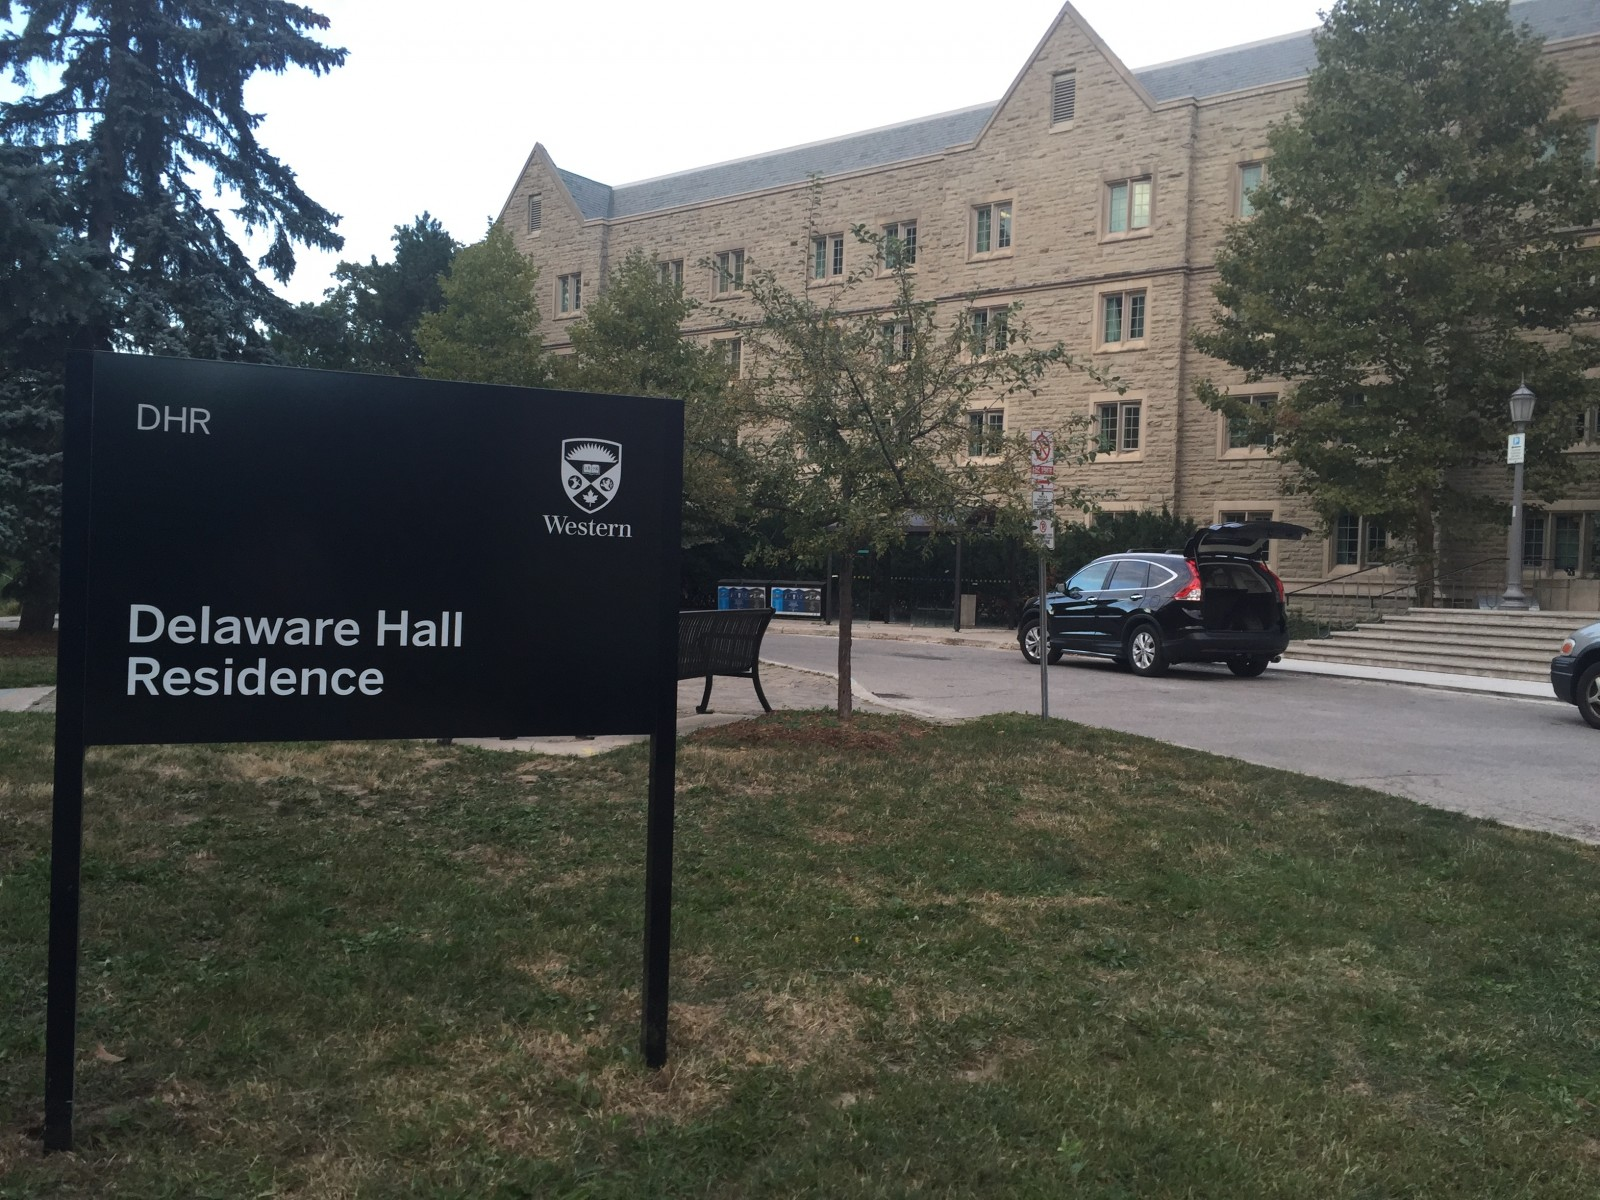 Delaware Hall just turned 50